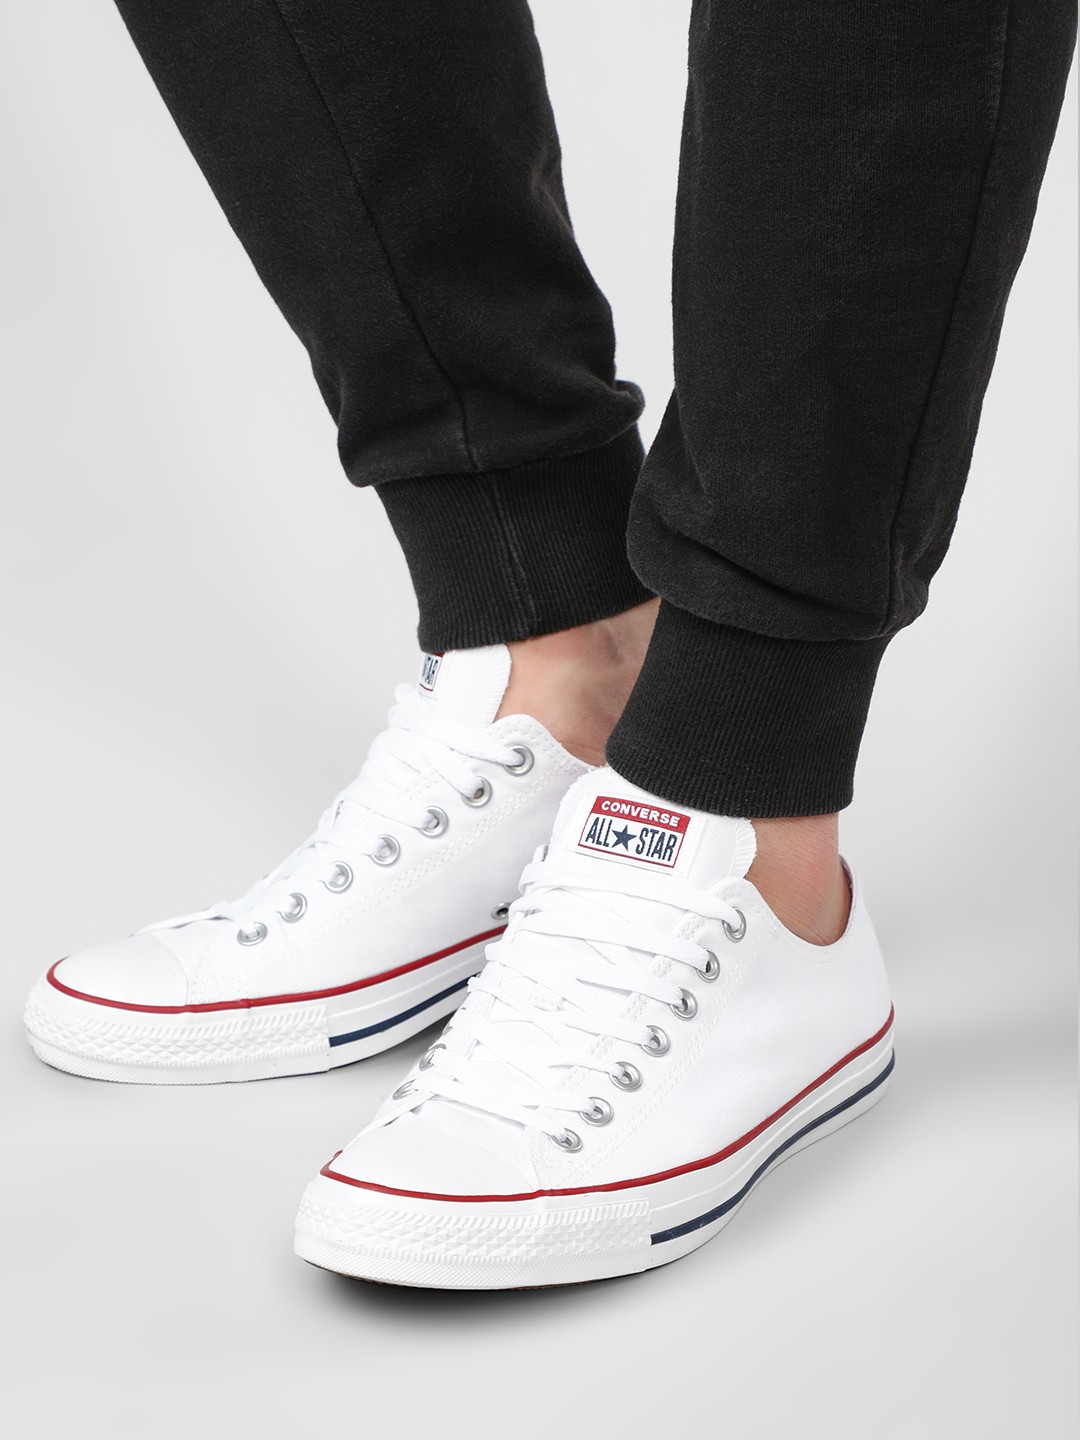 Converse White Chuck Taylor All Star Low Top 1